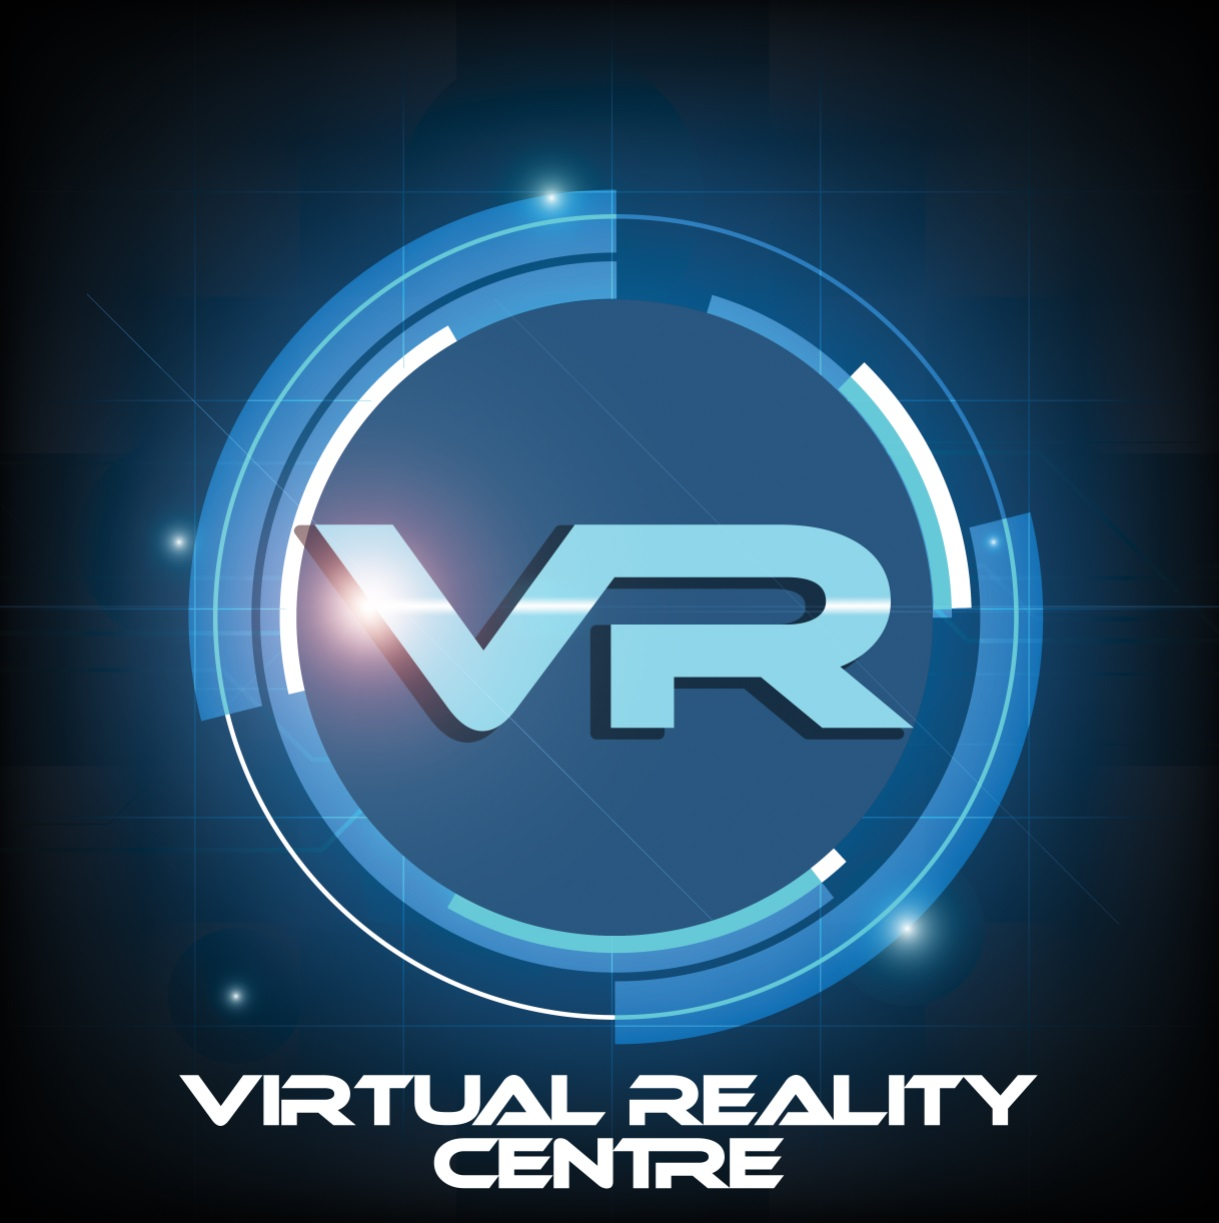 Virtual Reality Centre logo